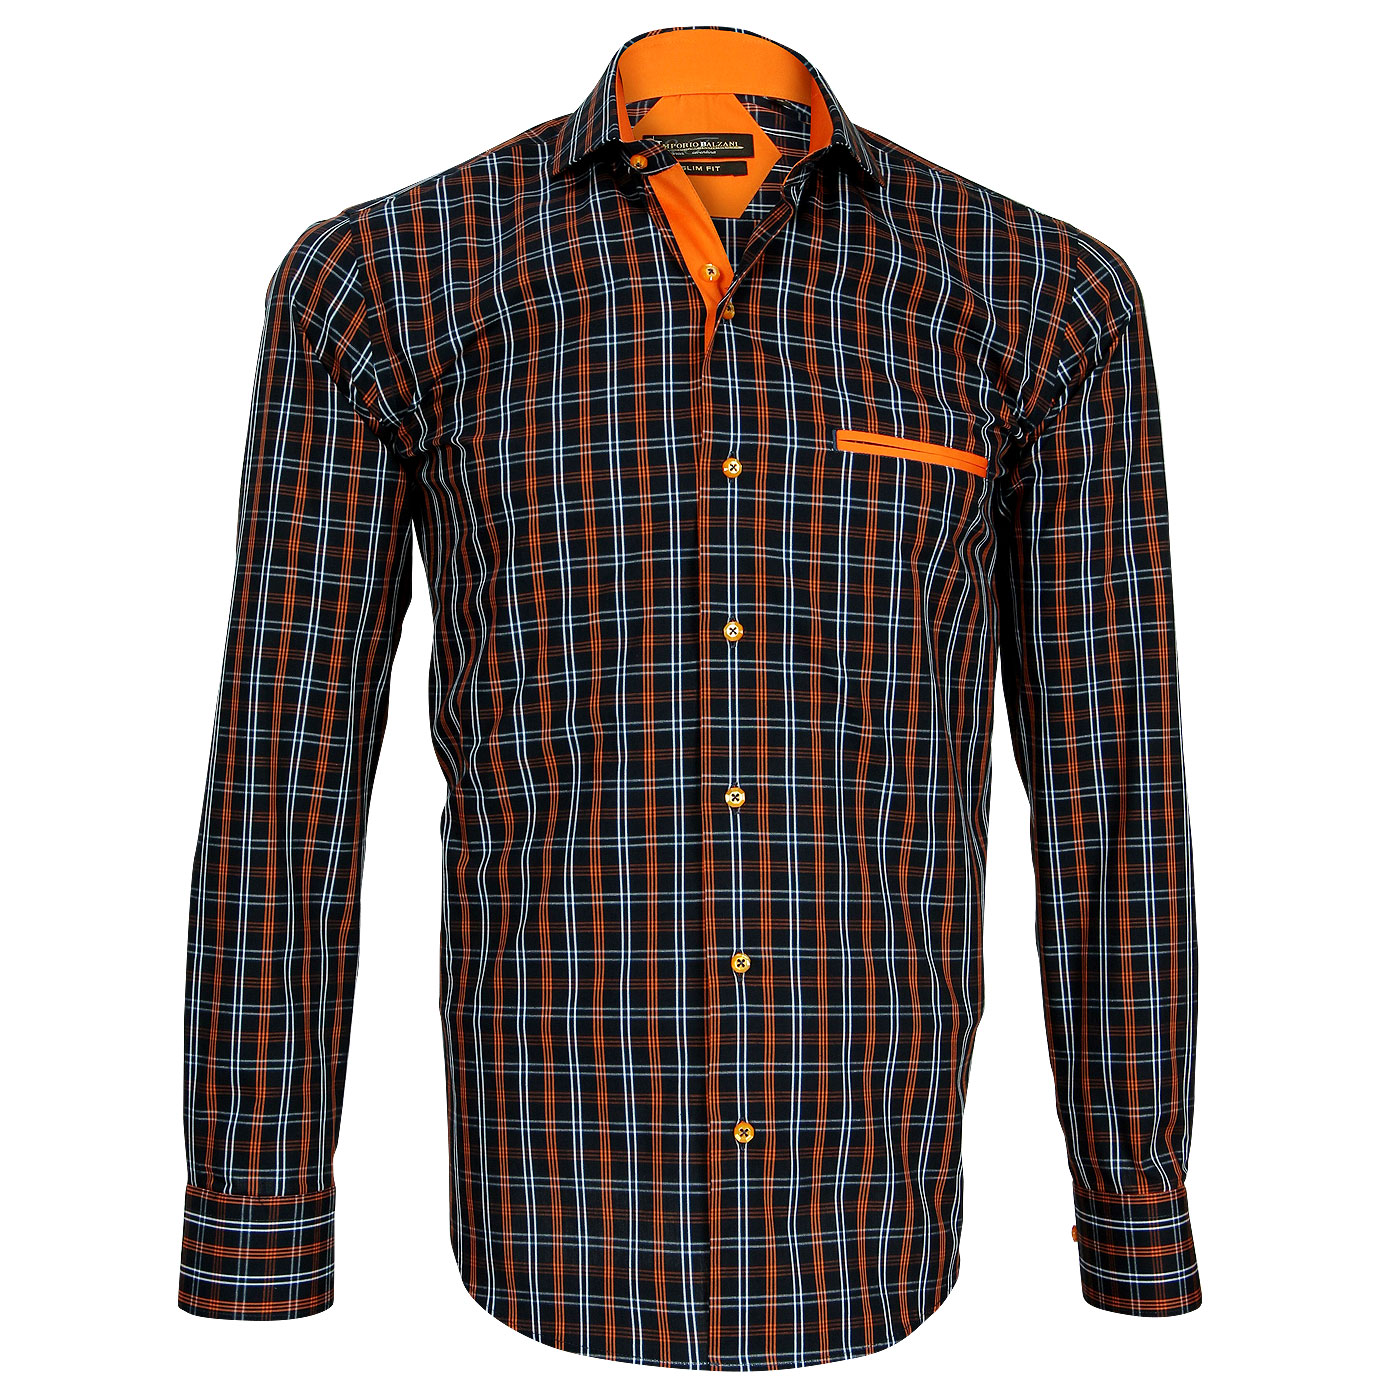 plaid Shirt Collection + 600 Models on Webmenshrits